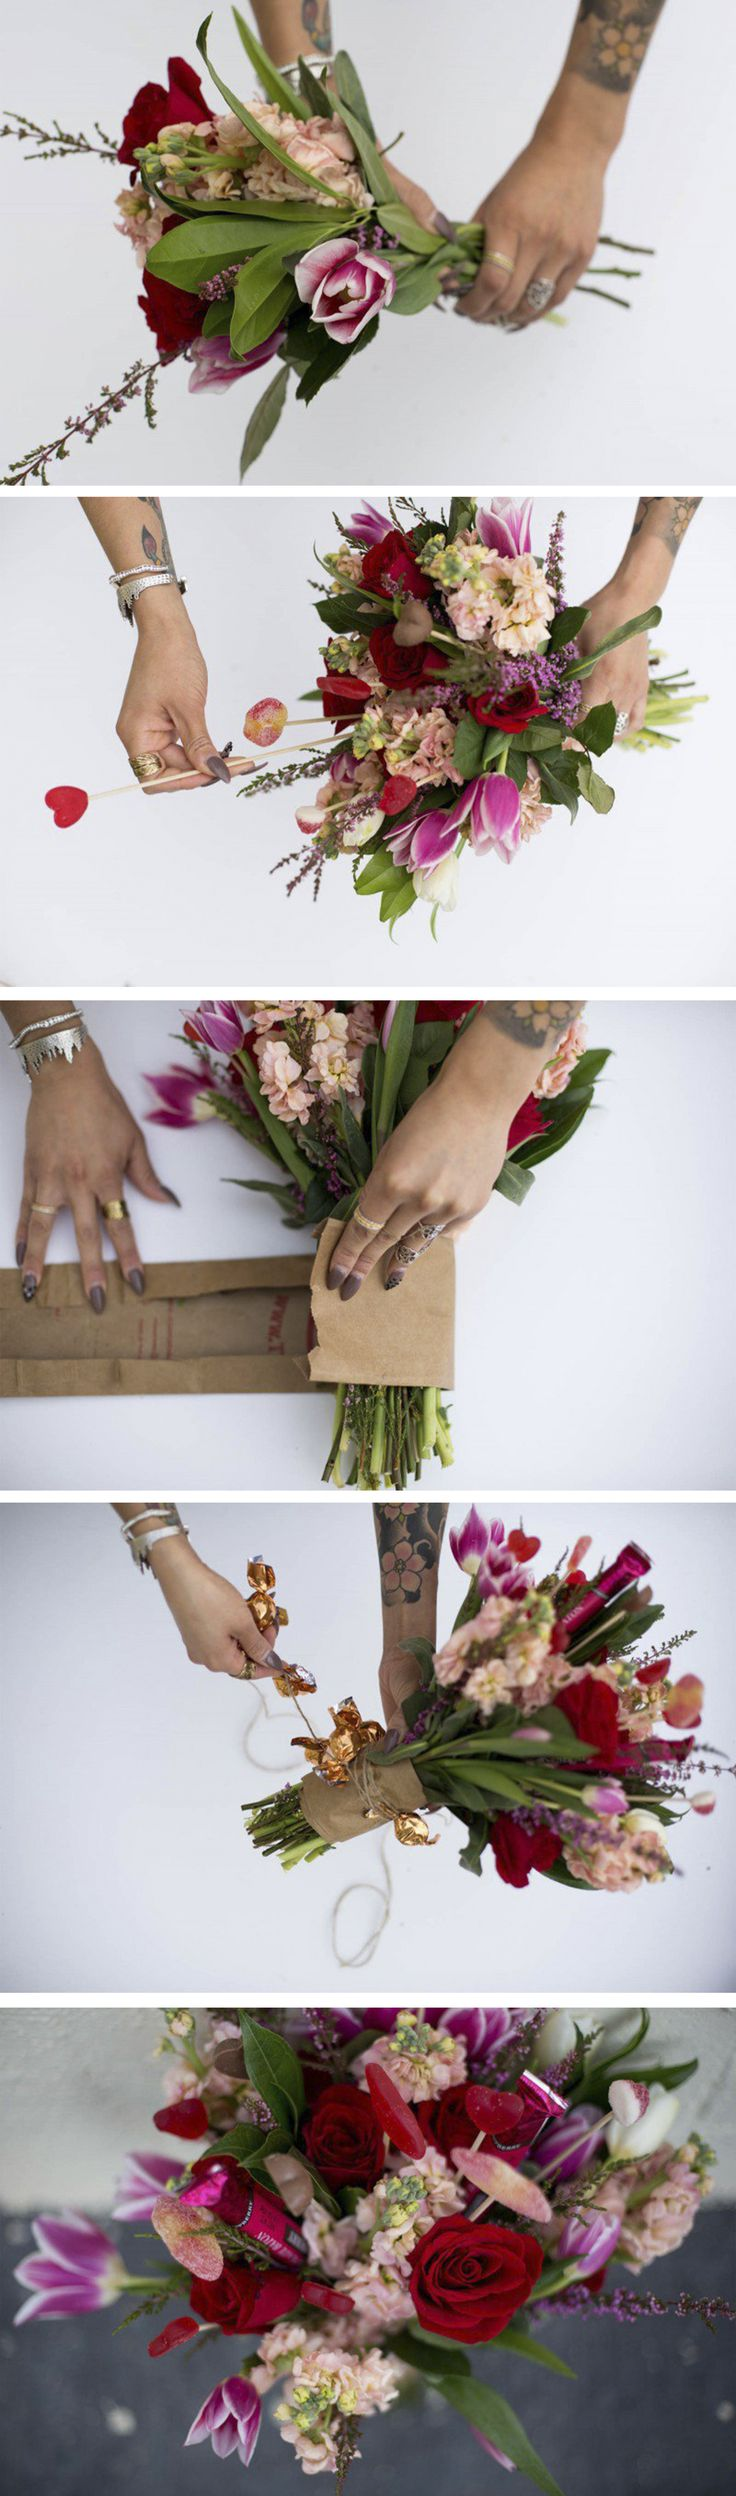 Grocery Store DIY: Valentine's Bouquet | We took the obvious grabs from the grocery store (red roses, some tulips, and a couple candies and truffles) and DIY-ed them into an arrangement perfect for any romantic occasion!